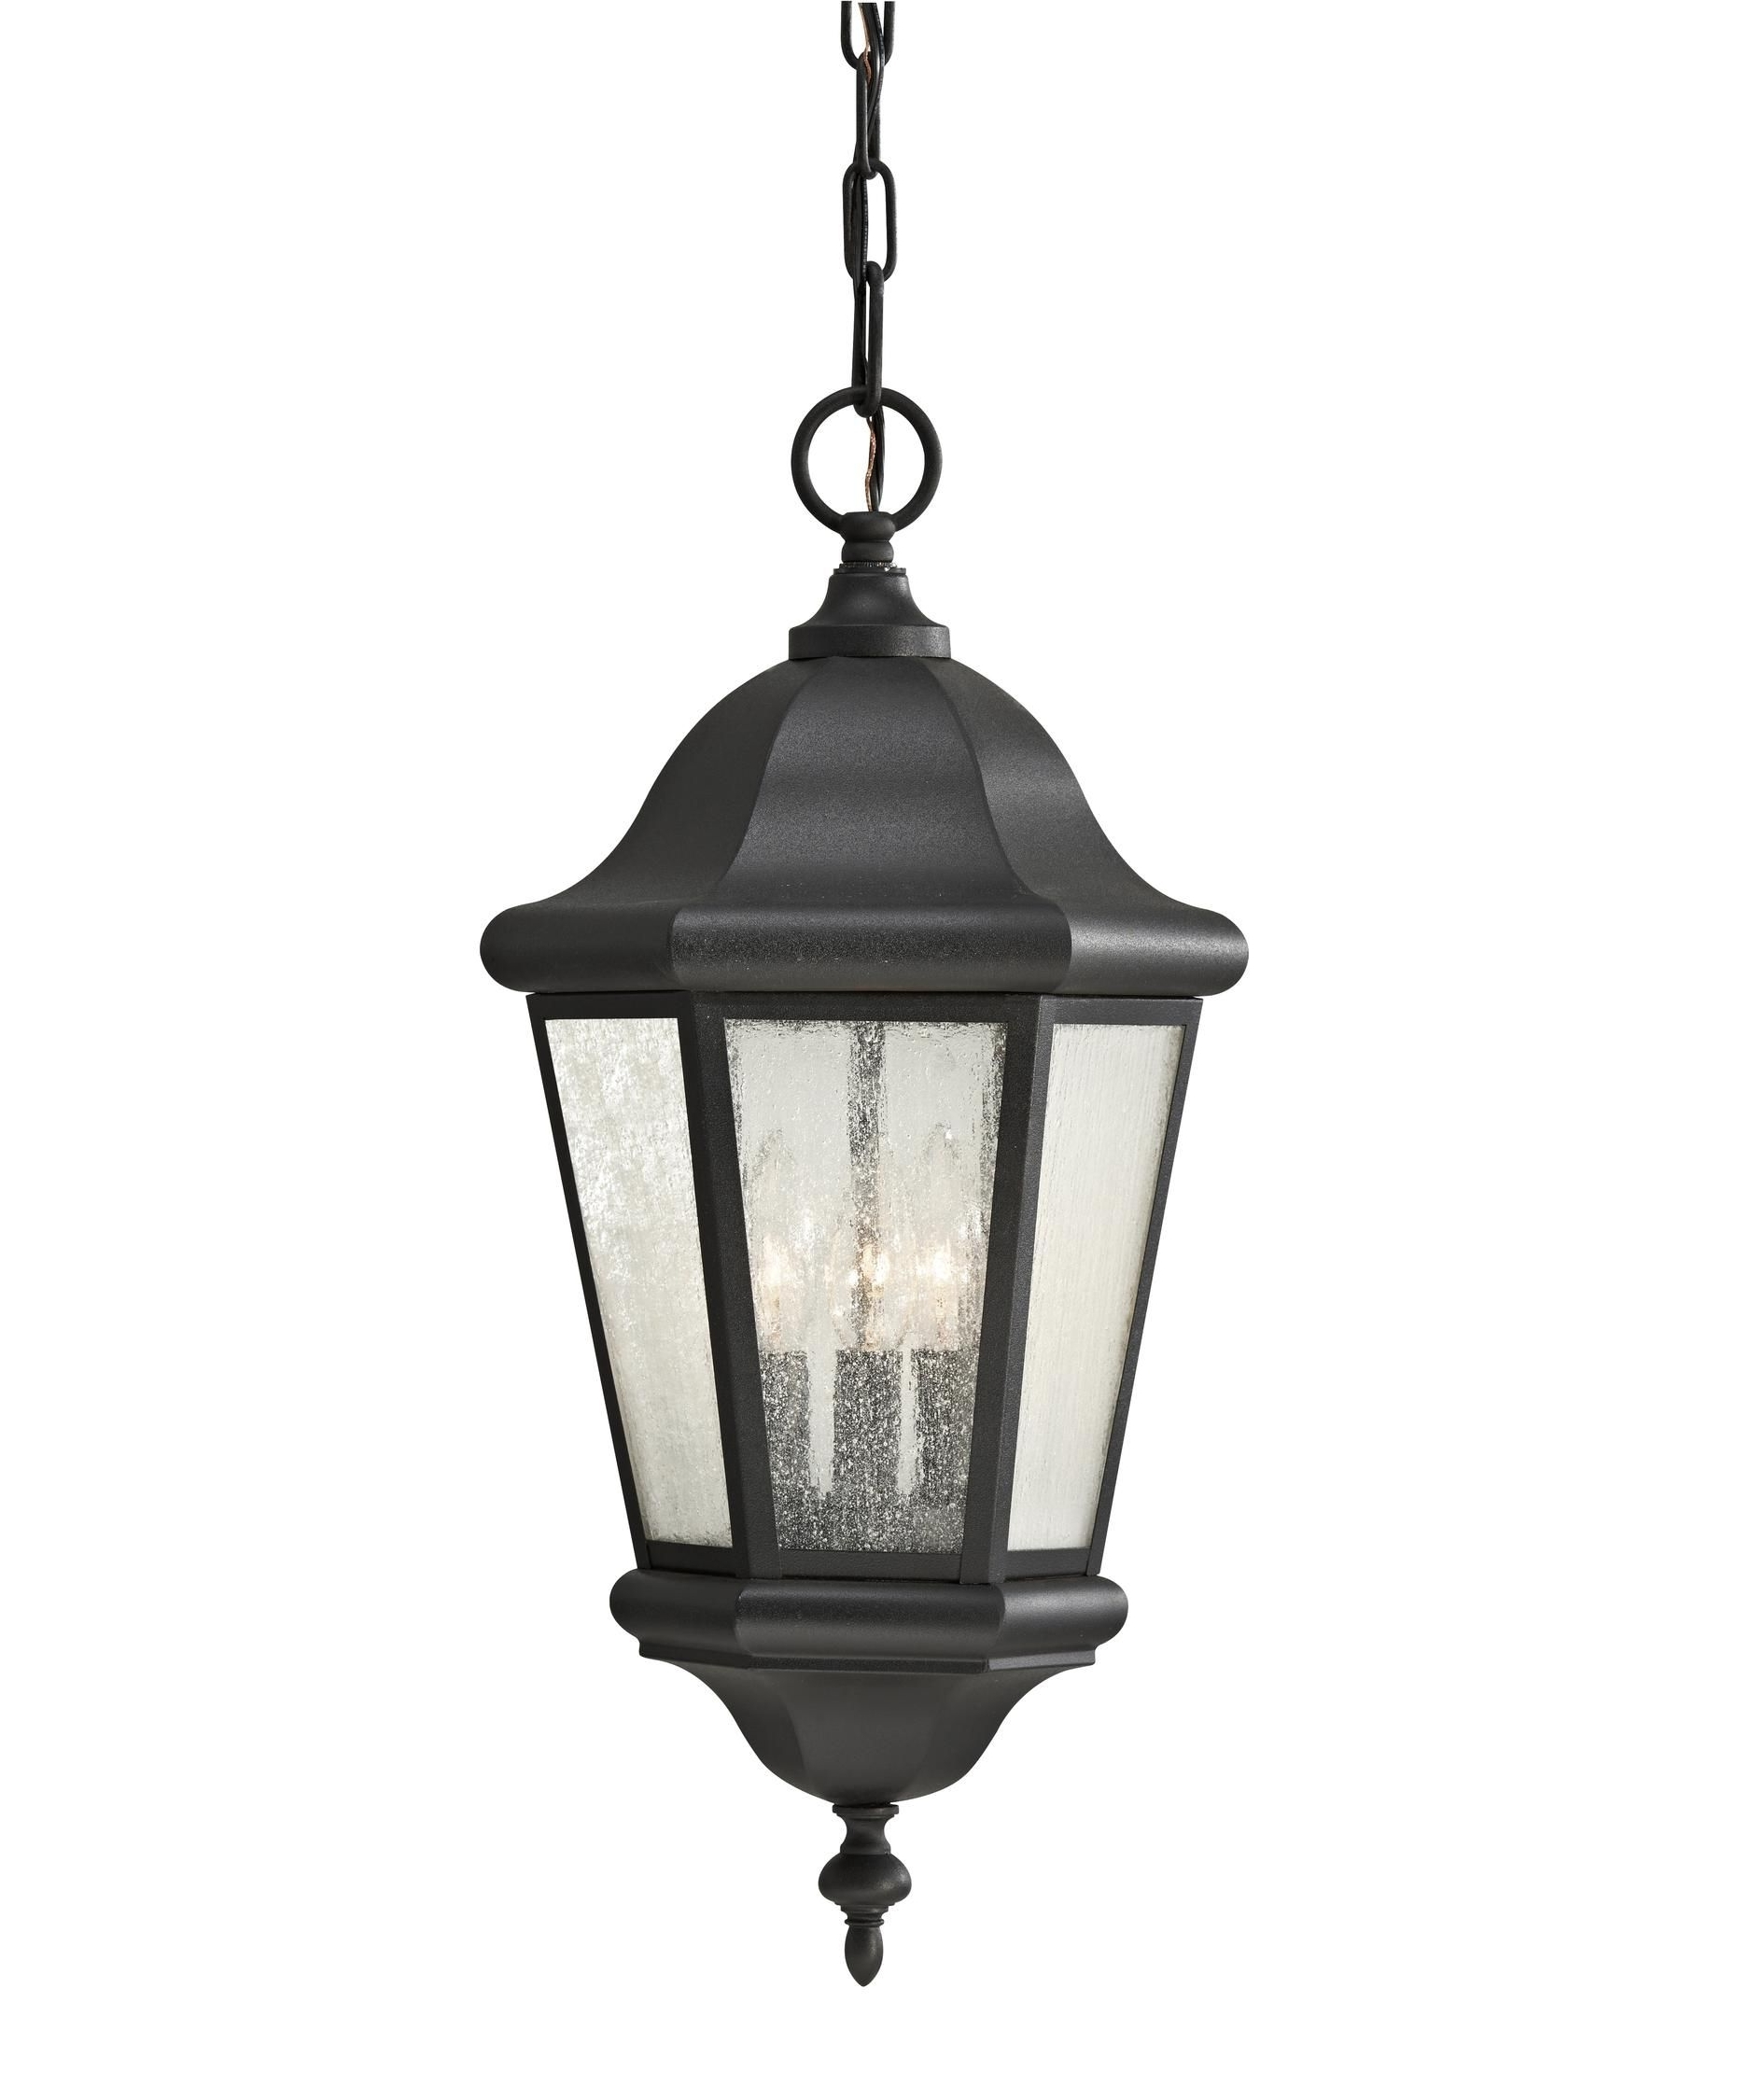 Murray Feiss Ol5911 Martinsville 3 Light Outdoor Hanging Lantern For 2018 Outdoor Hanging Light Fixtures In Black (View 9 of 20)